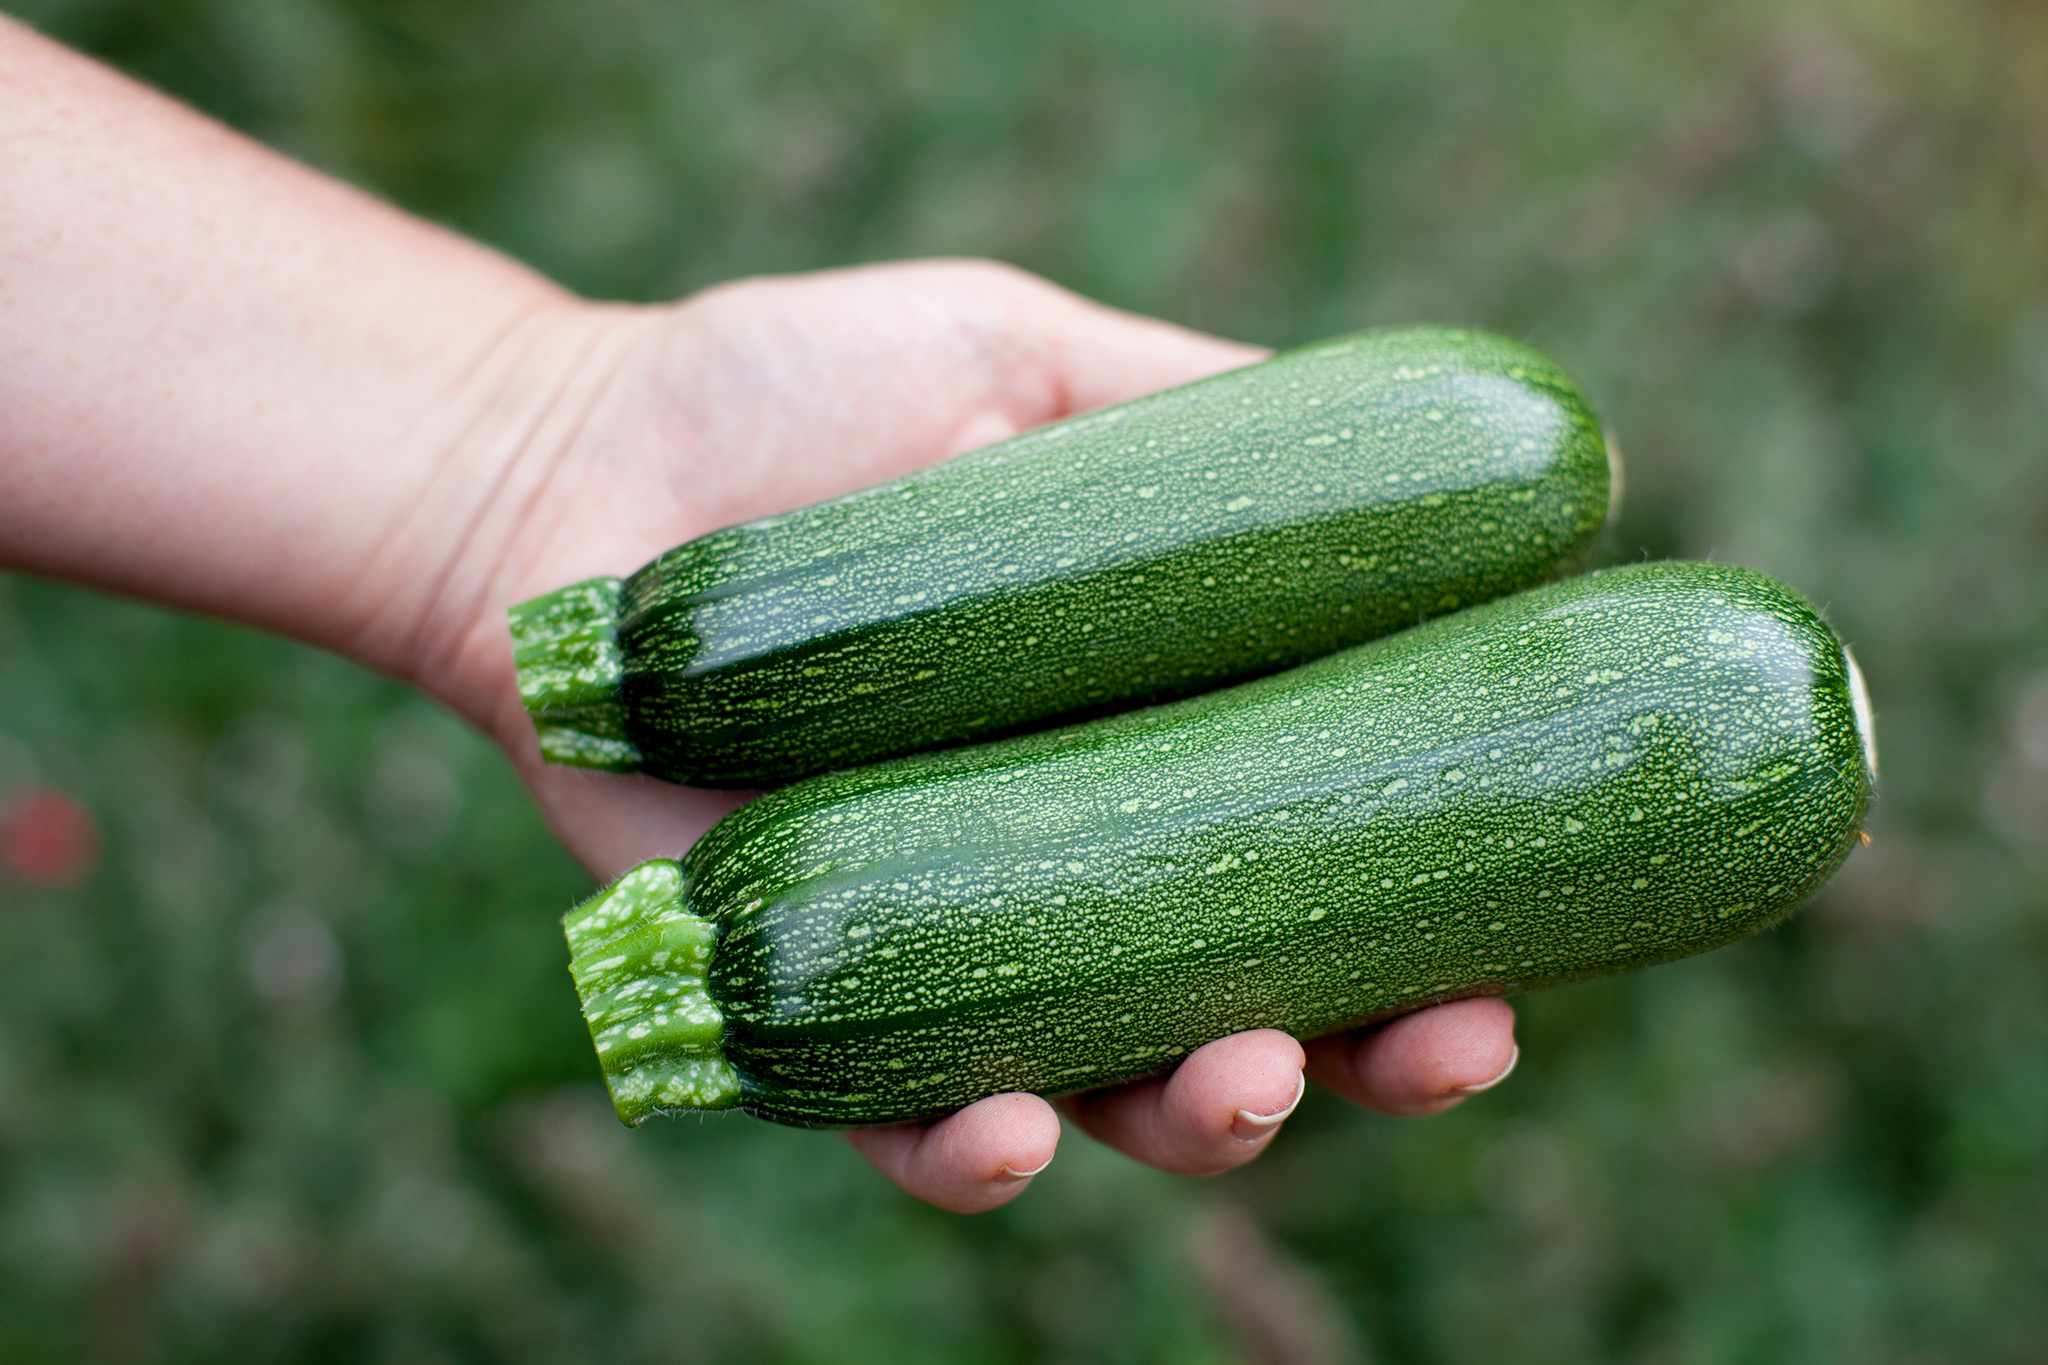 Two courgettes in an open hand